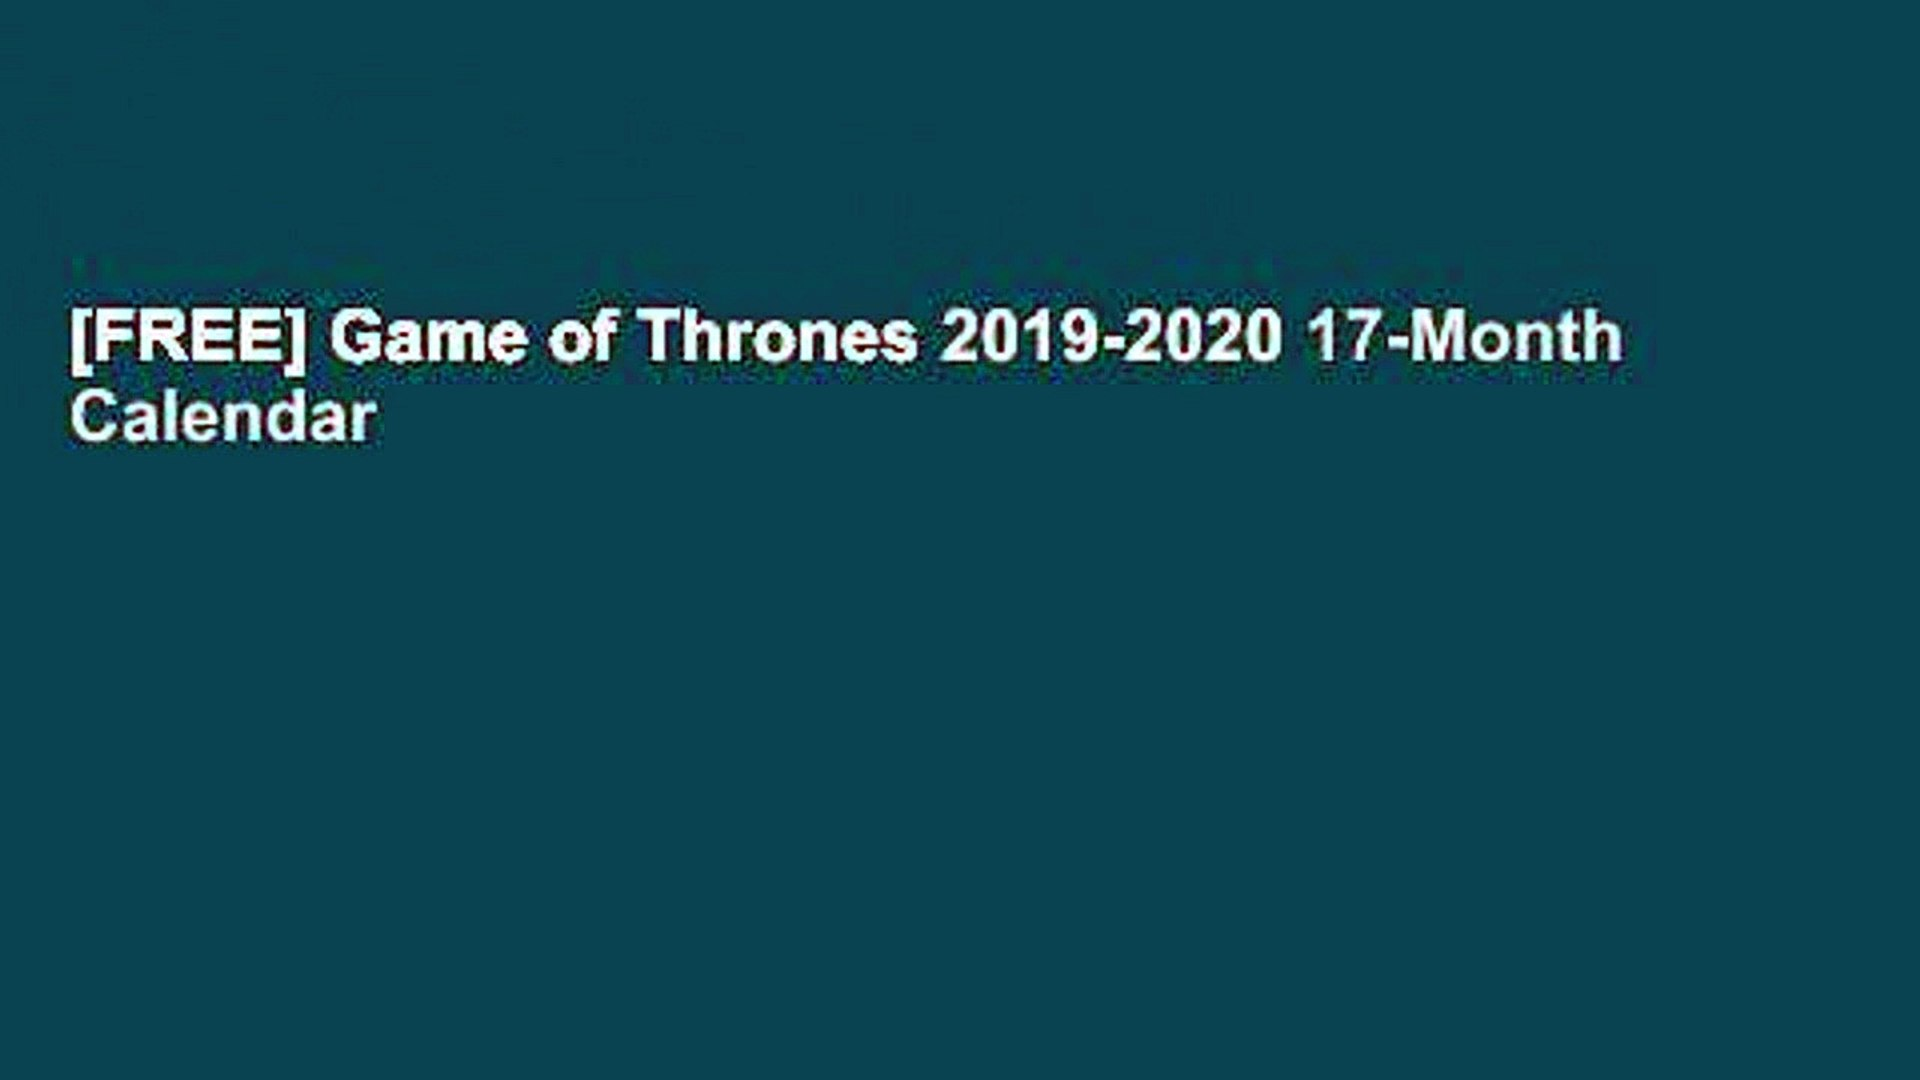 [FREE] Game of Thrones 2019-2020 17-Month Calendar